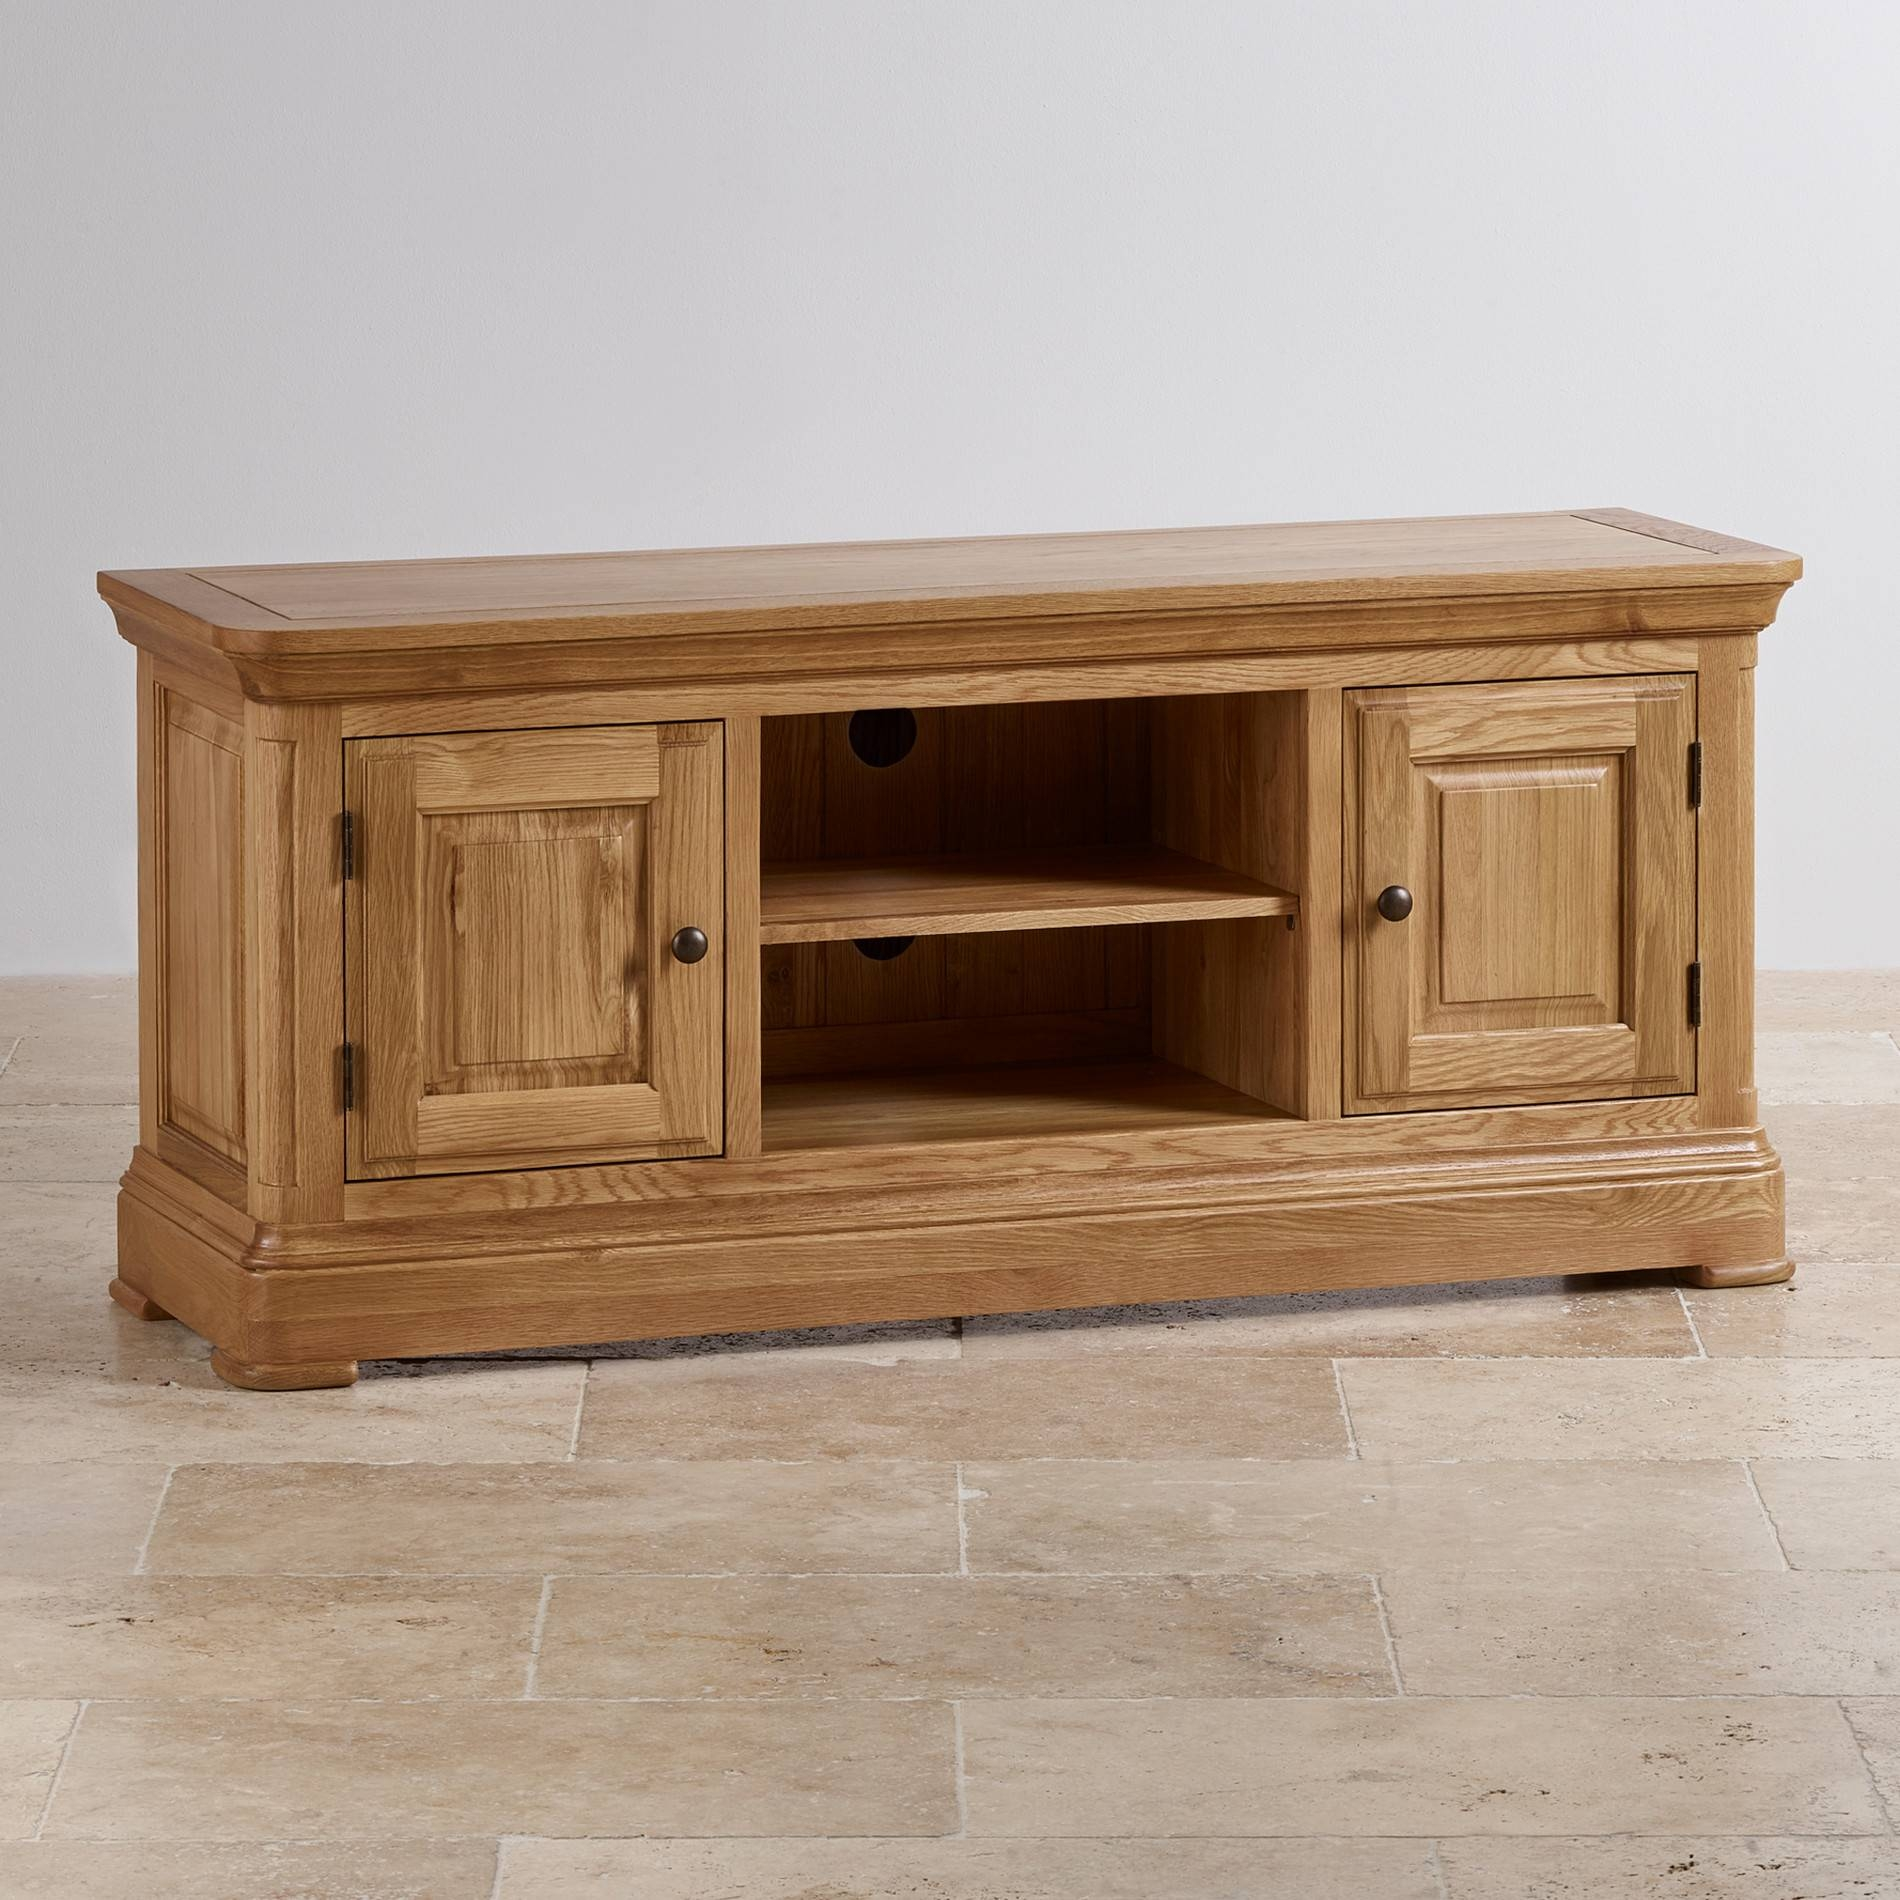 Canterbury Large Tv Cabinet | Solid Oak | Oak Furniture Land for Tv Cabinets And Coffee Table Sets (Image 3 of 15)